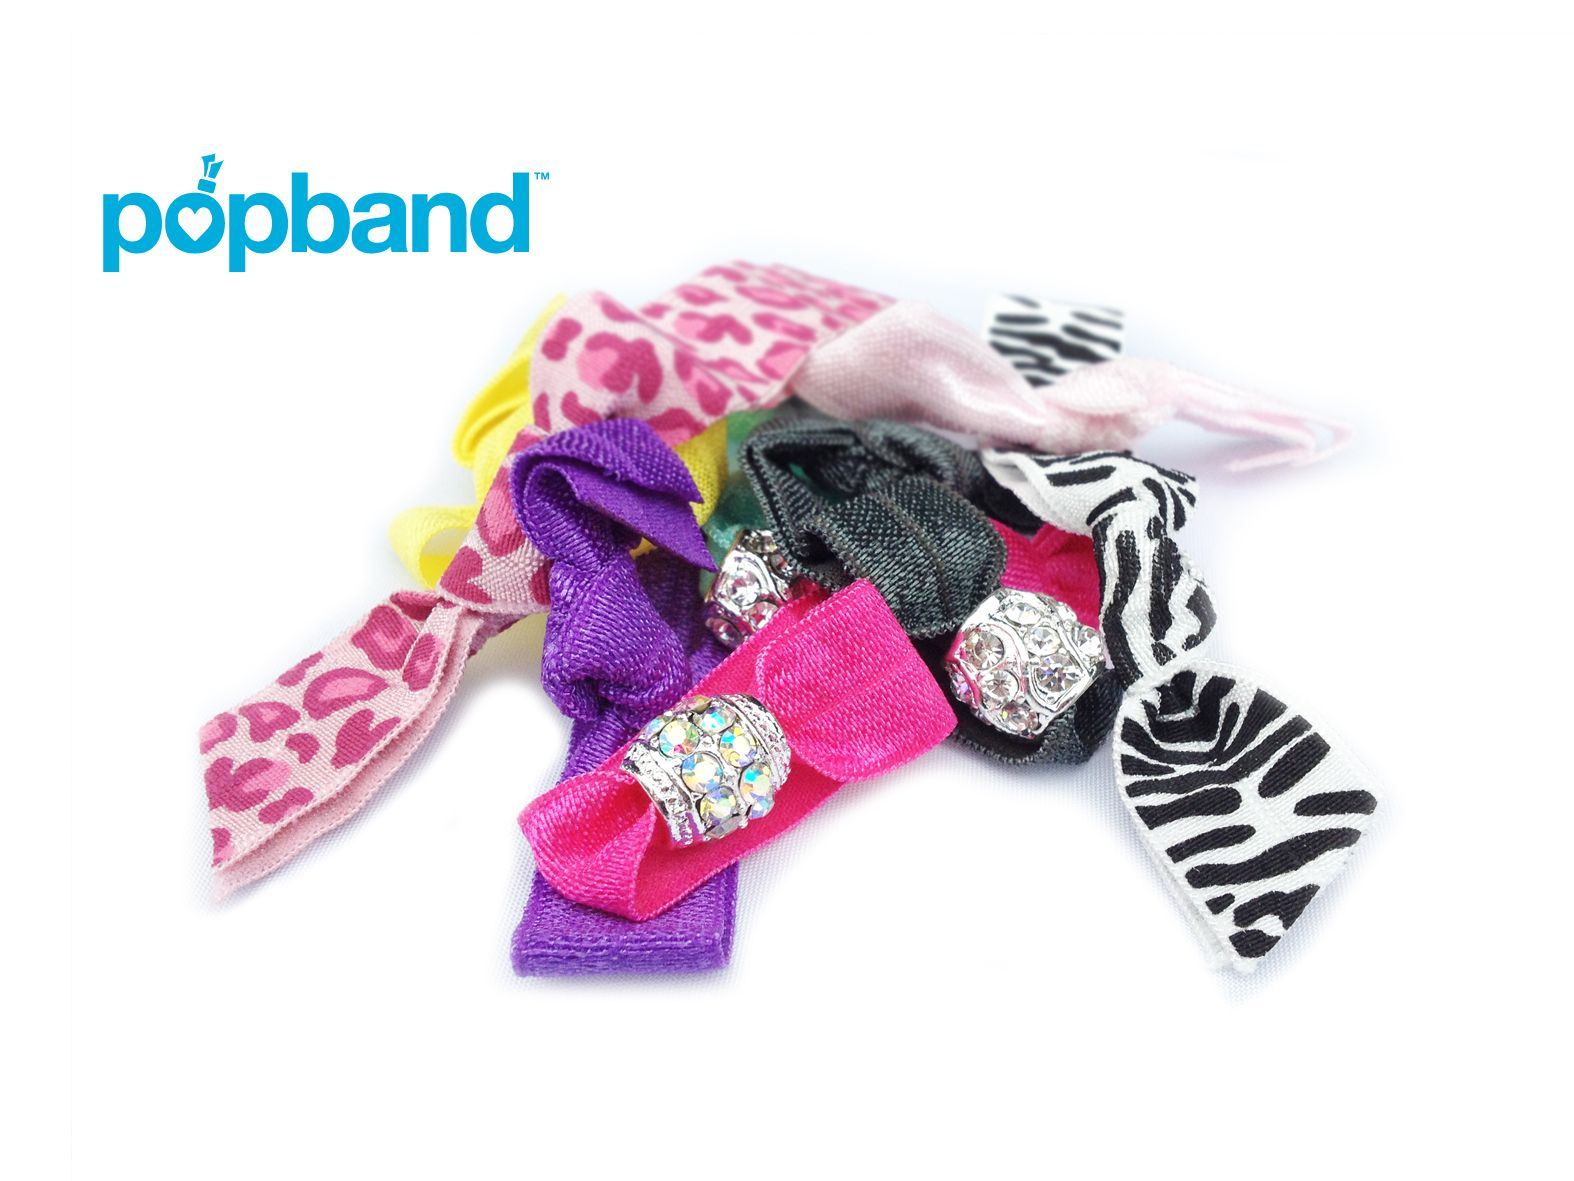 Pop Band - a hairband that leaves your hair flowing and kink-free, but out of your face. In a range of lovely summer colours, these are great for when the sun comes out (and finally stays out).